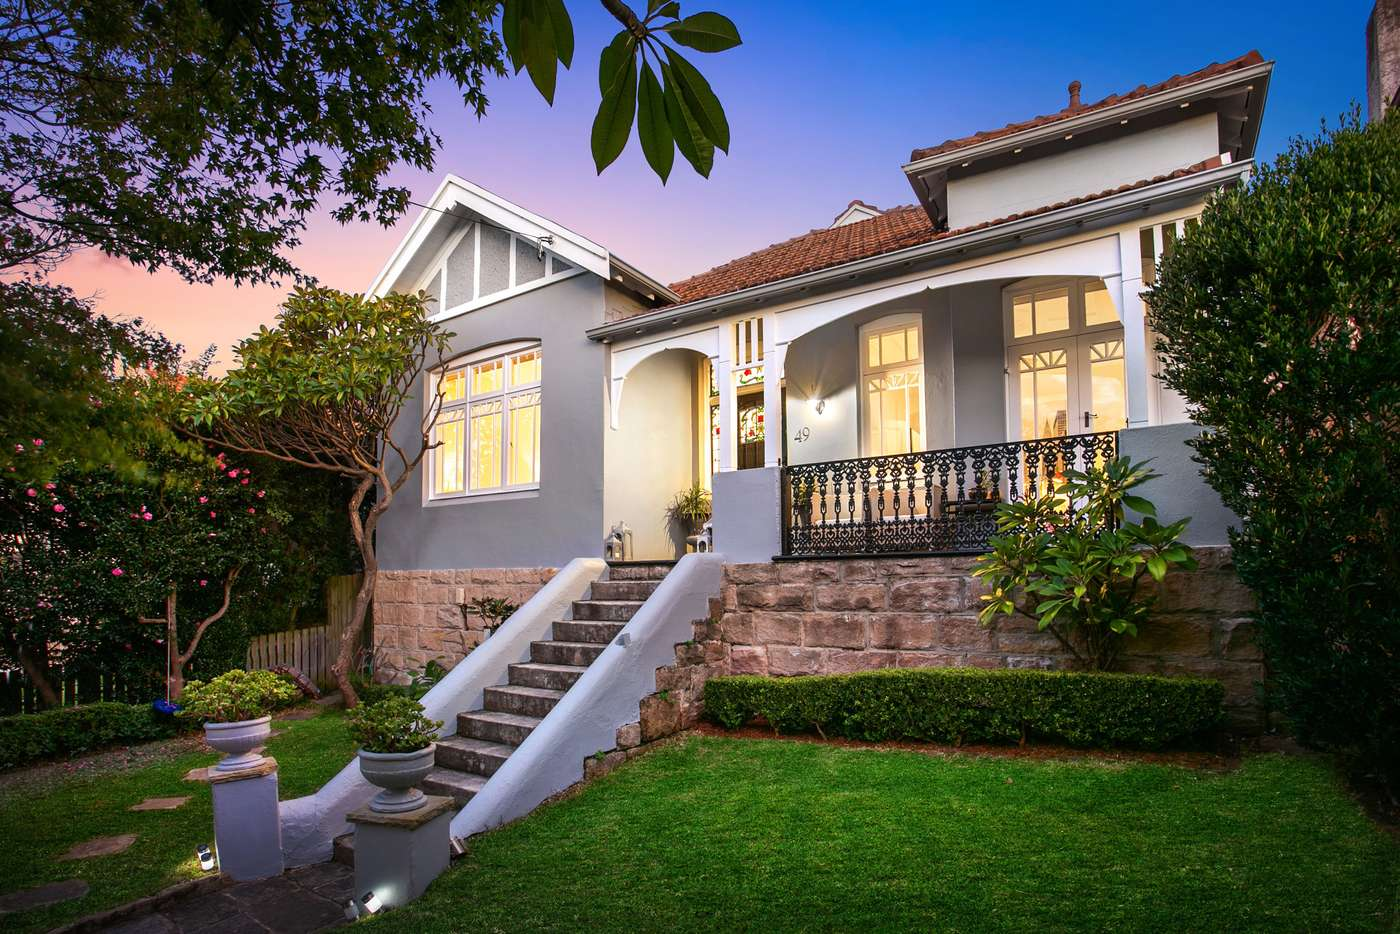 Main view of Homely house listing, 49 Reynolds Street, Cremorne NSW 2090